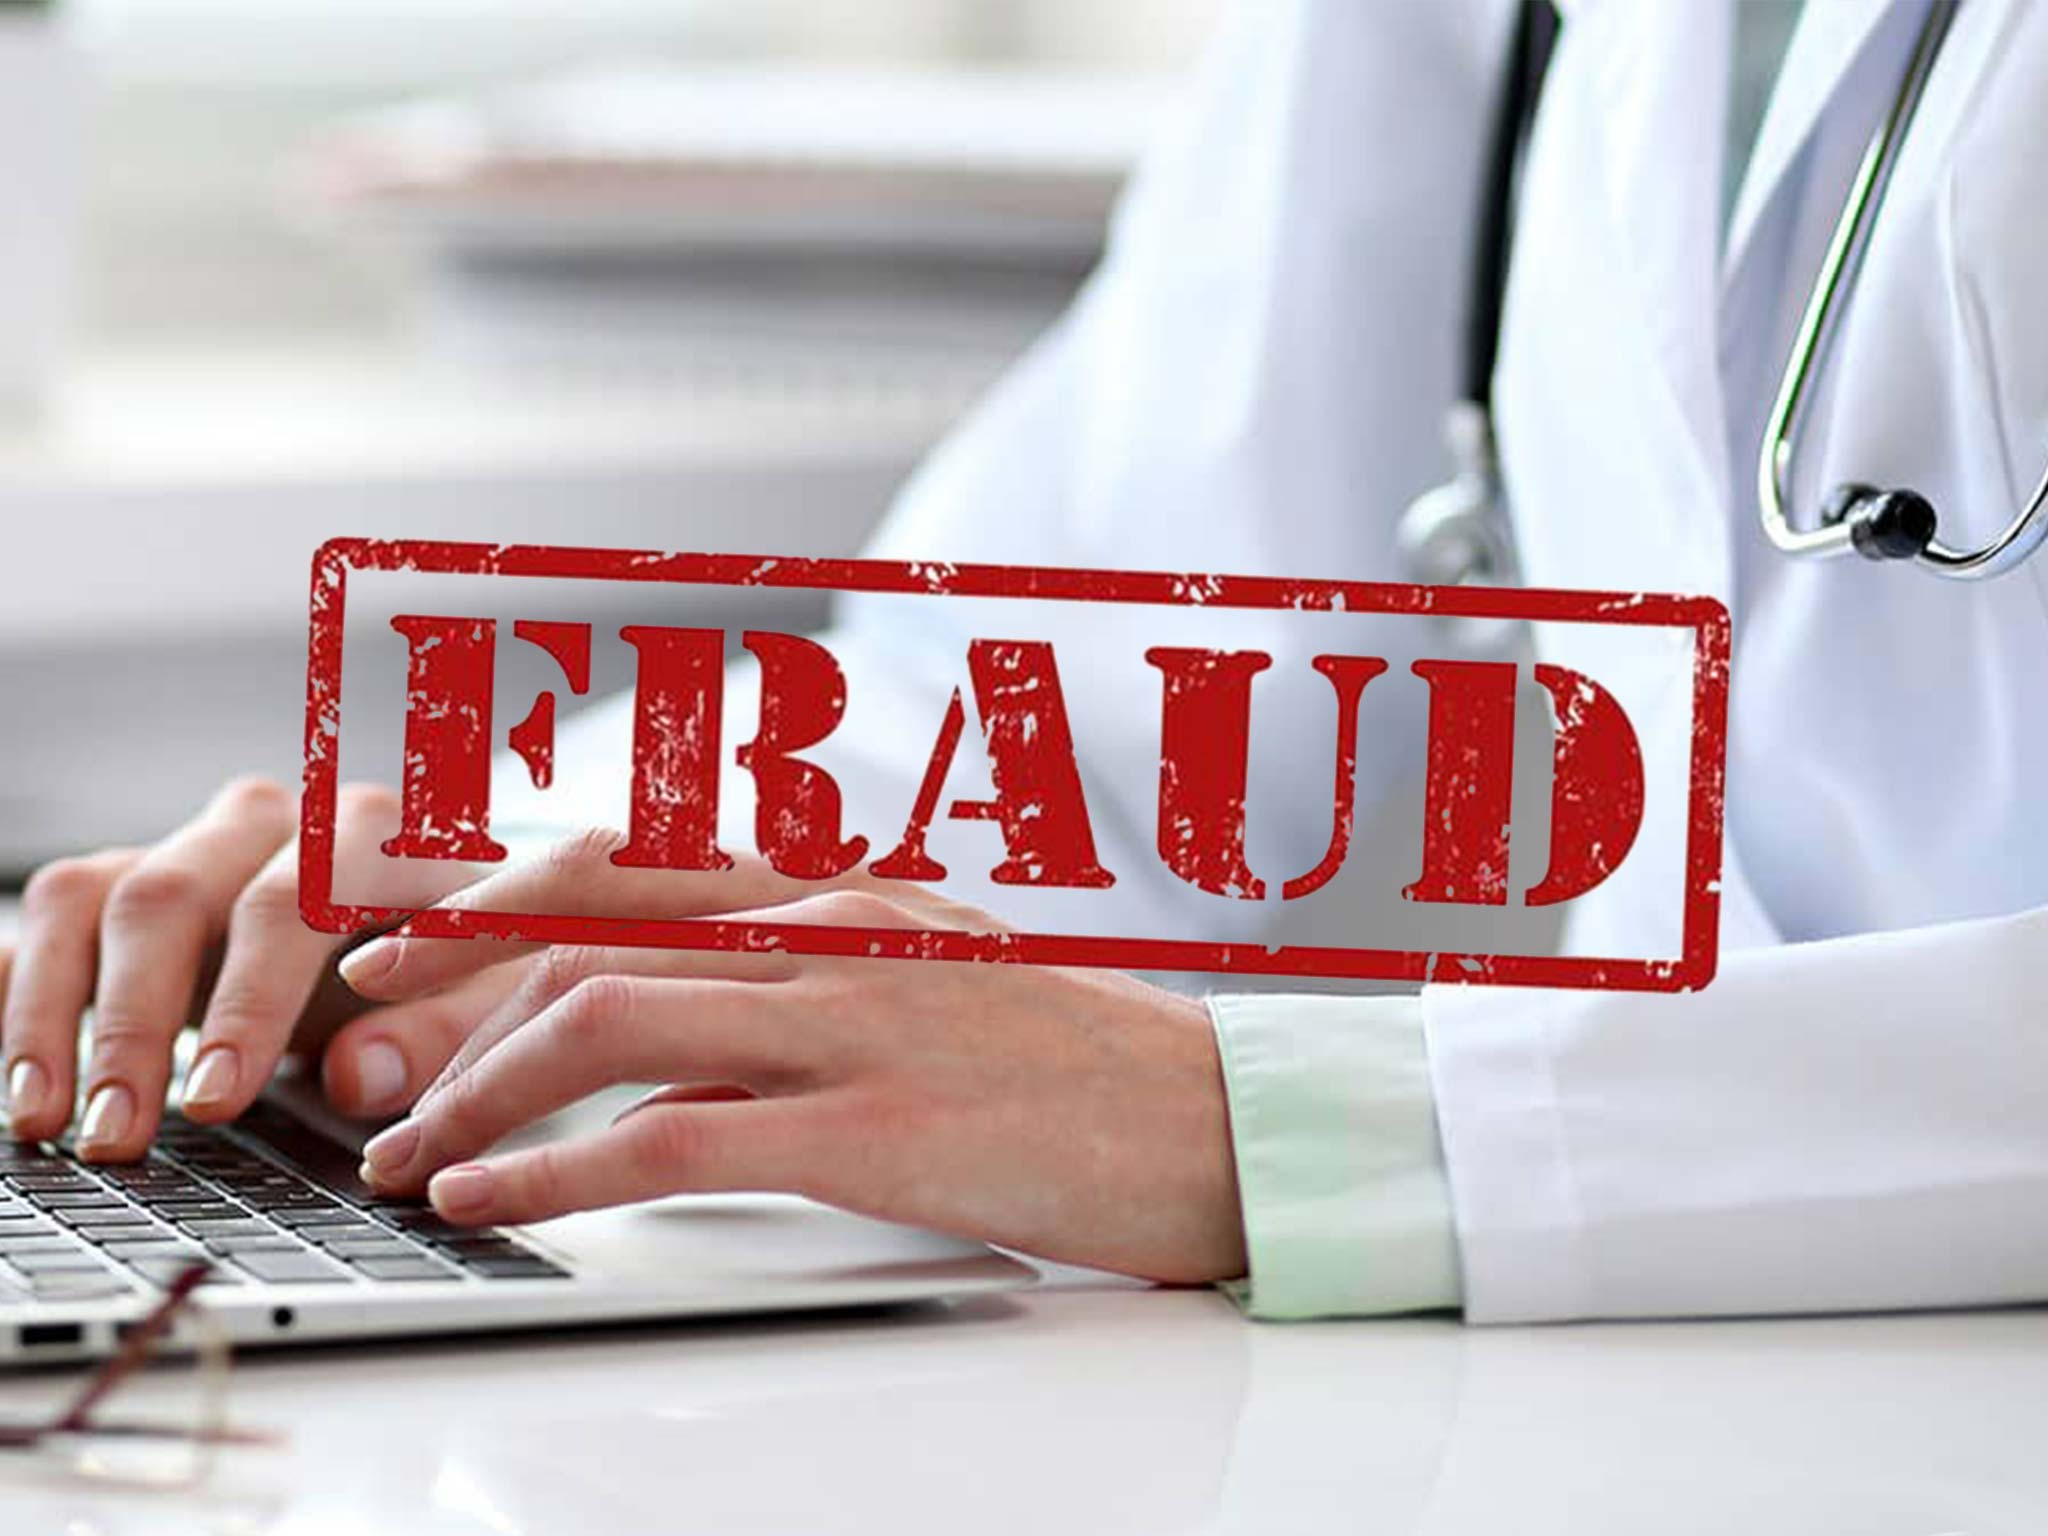 Telemedicine owners charged in million dollars' worth fraud scheme | My  Front Page Investigative Reports